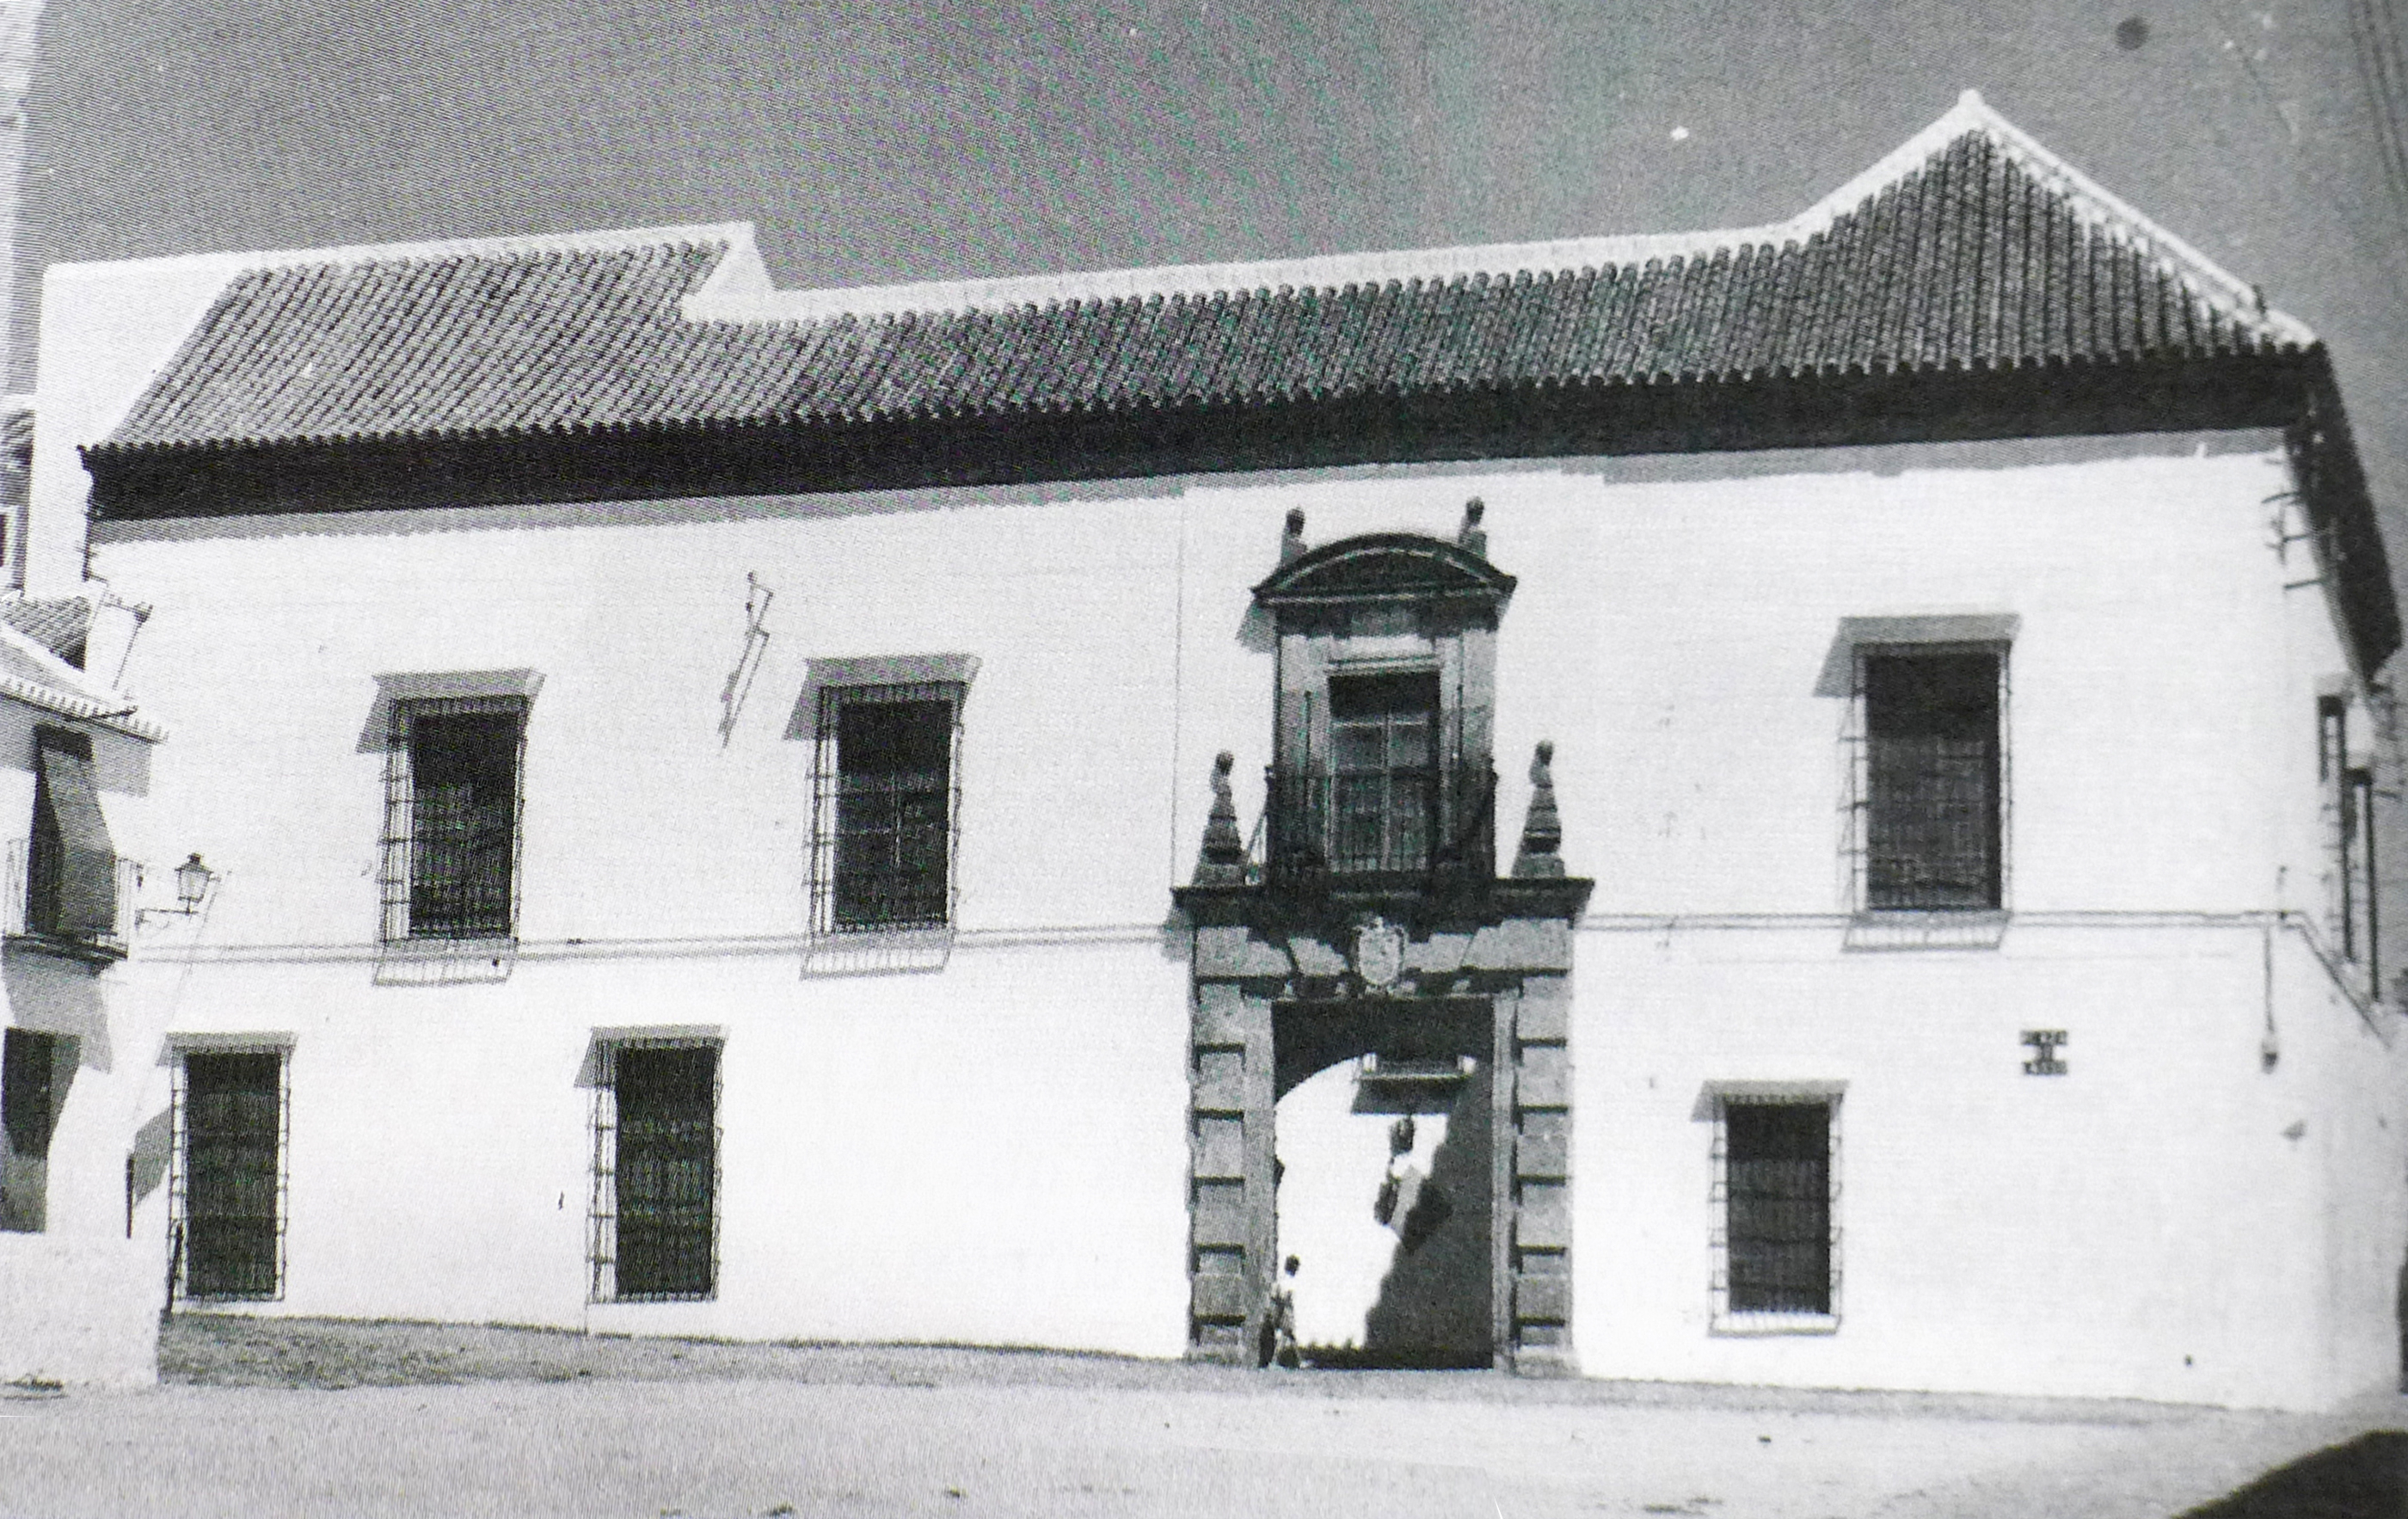 The Casa Palacio de Carmona's whitewashed Façade in an undated photograph circa 1960.